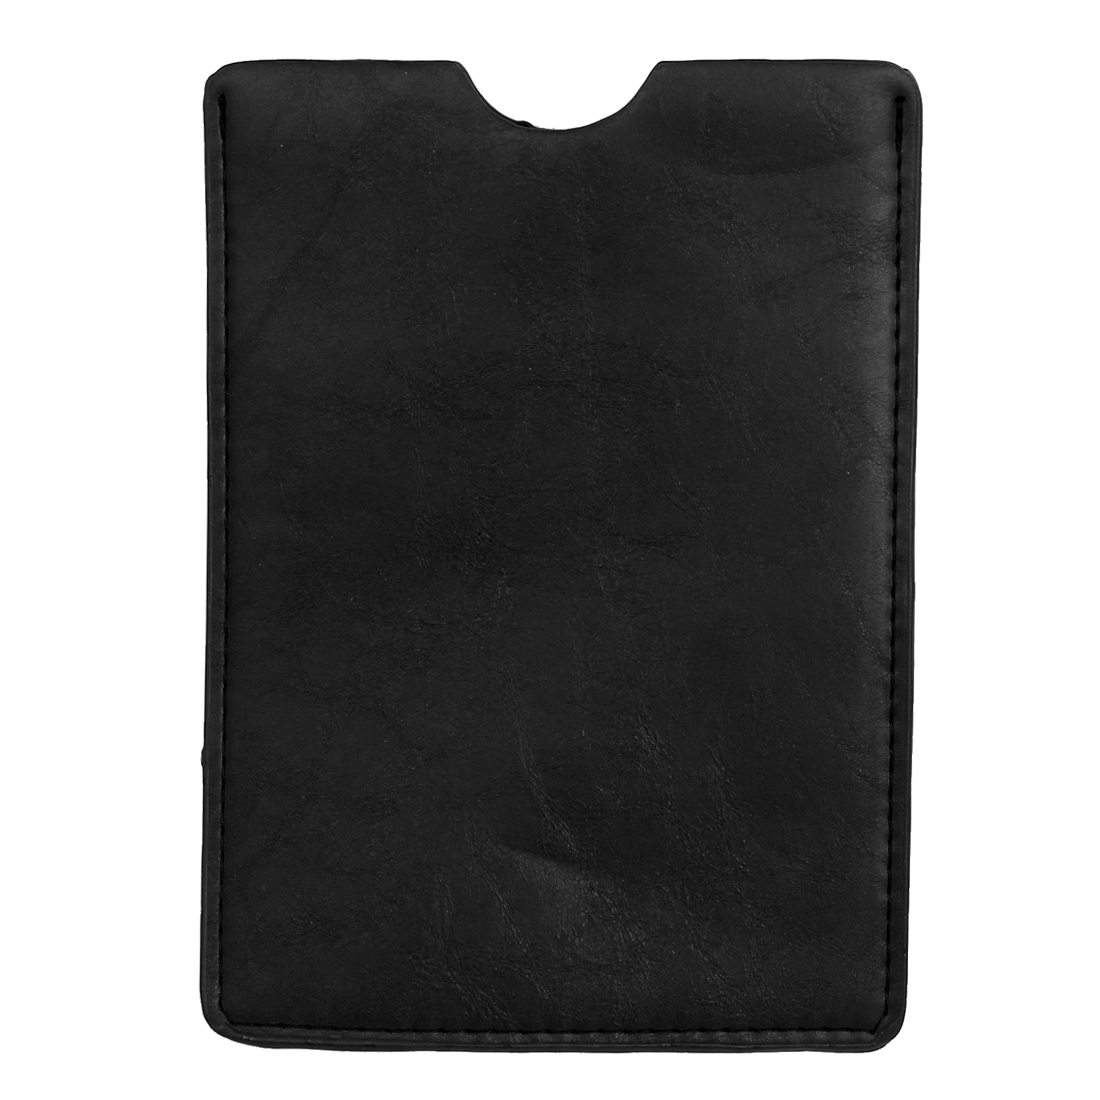 "Black Faux Leather Universal Inline Protective Case Cover for 7"" Tablet PC"